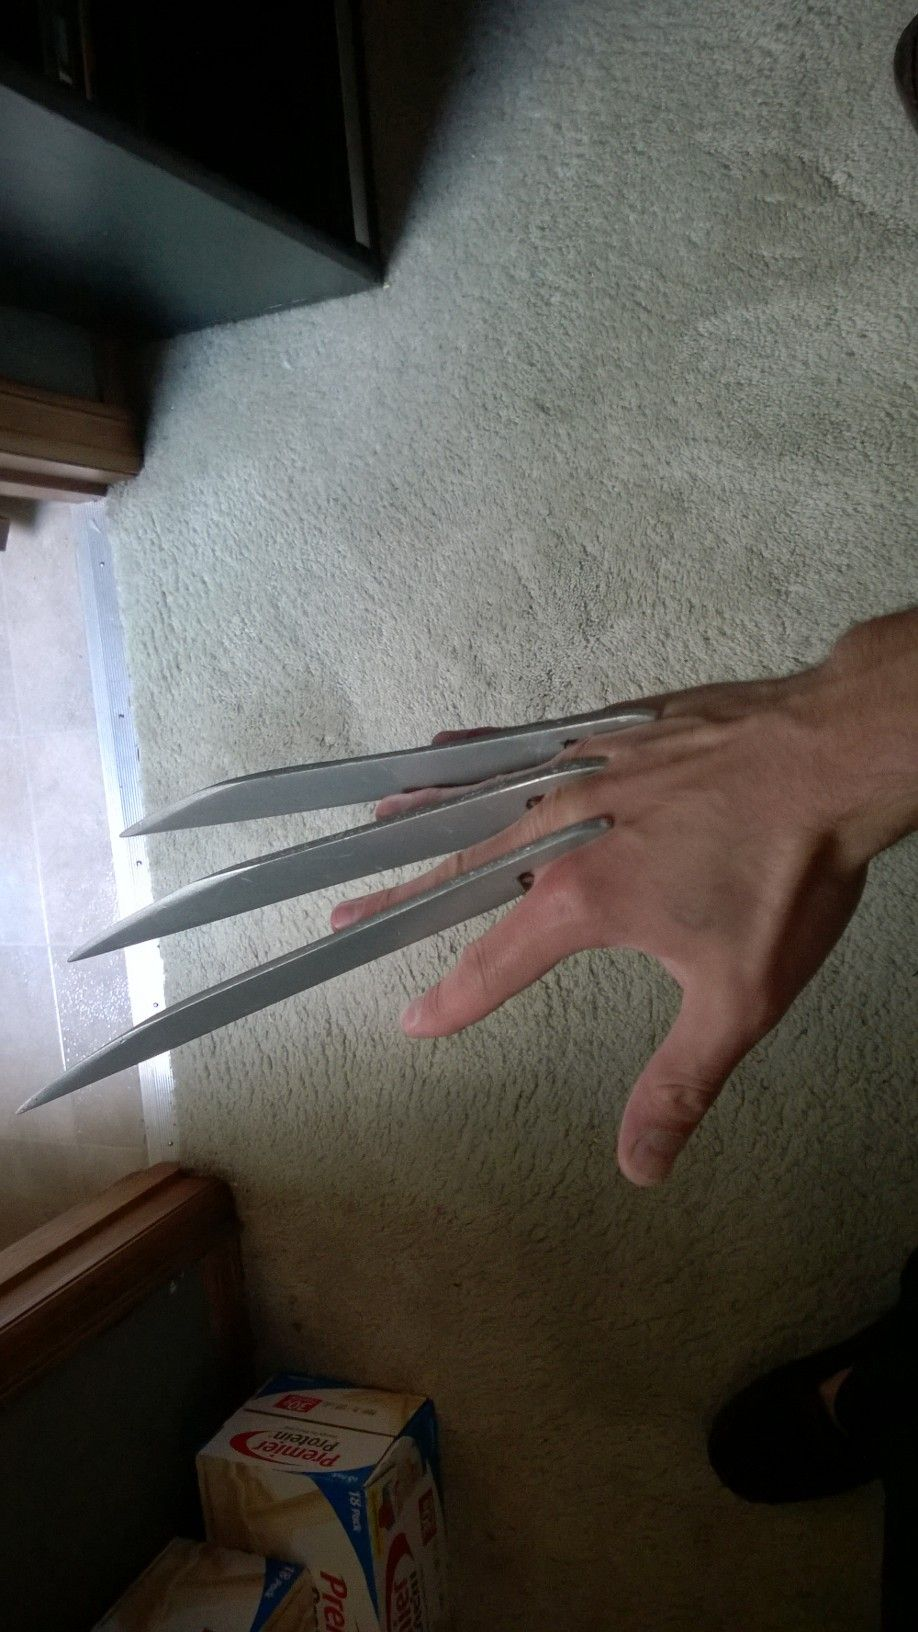 do it yourself Wolverine claws